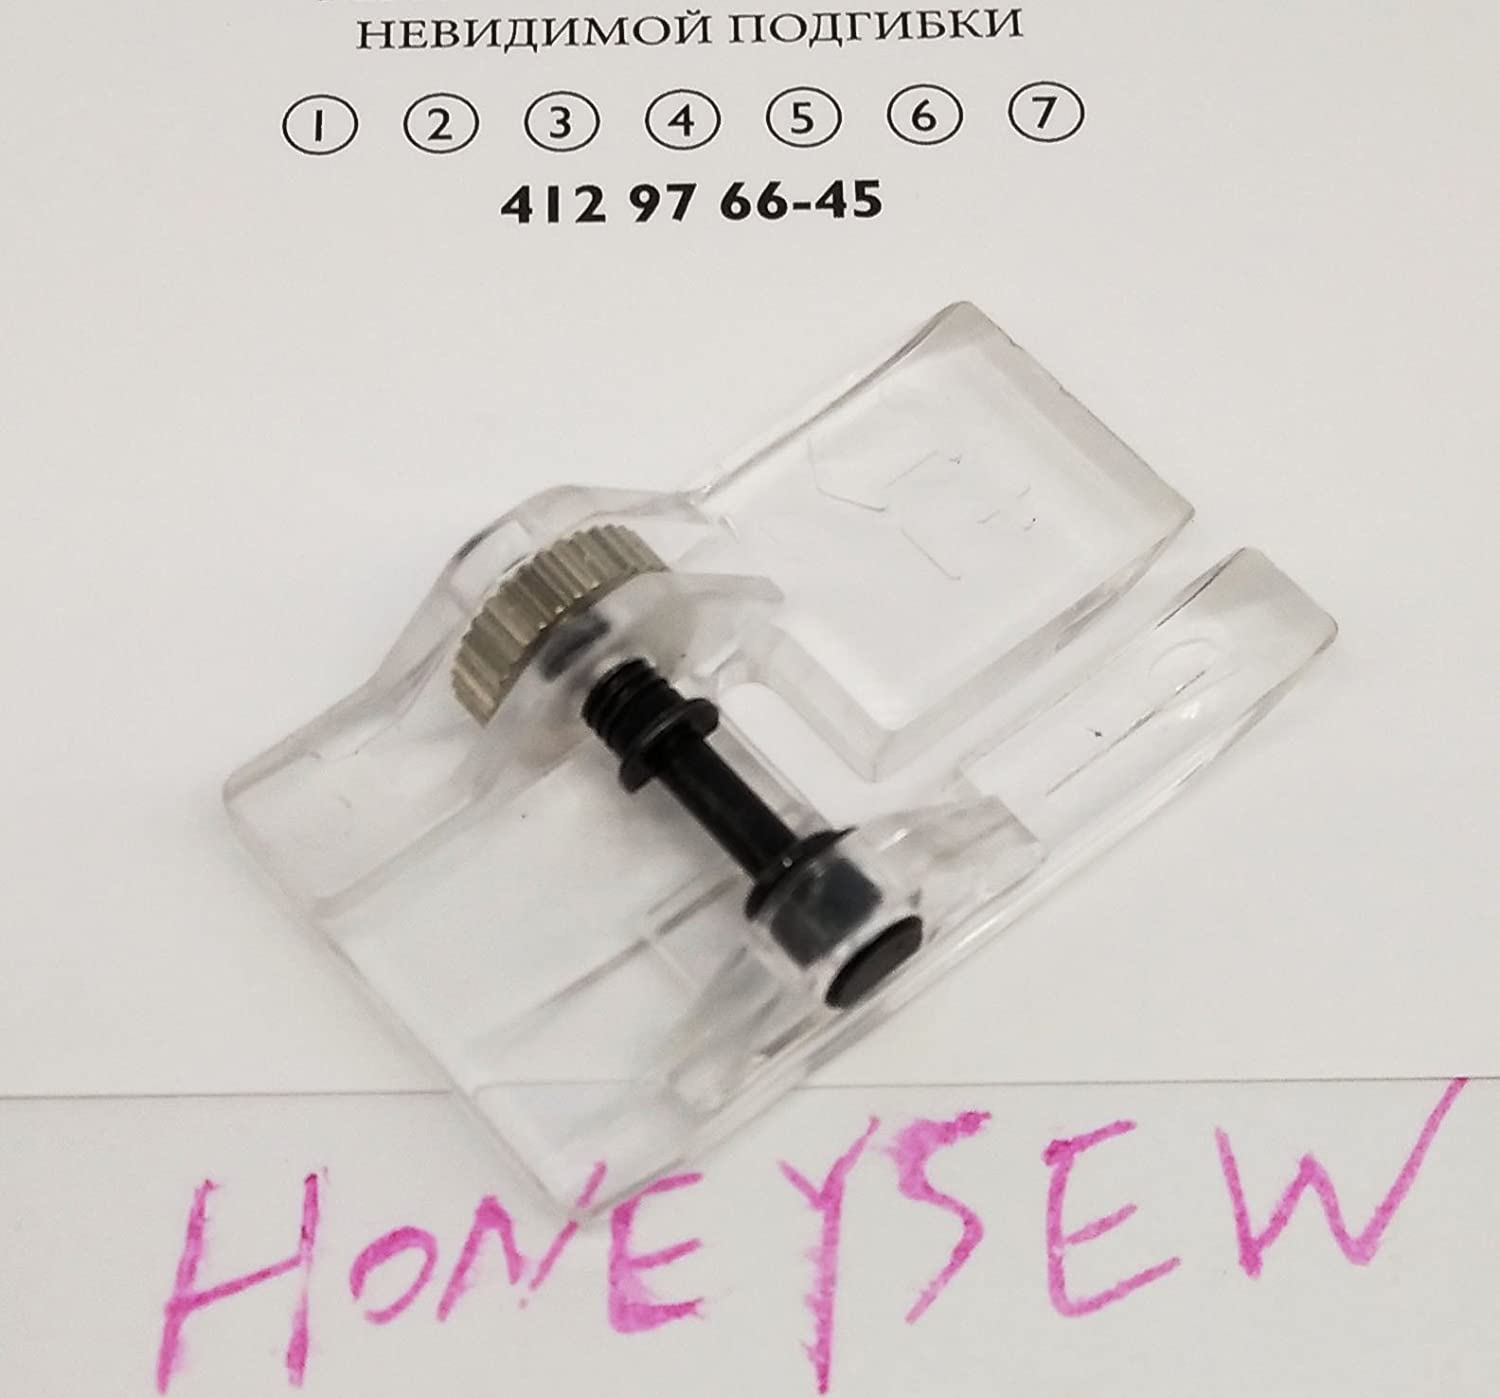 HONEYSEW Clear Embroidery Foot R for Viking 4128498-45